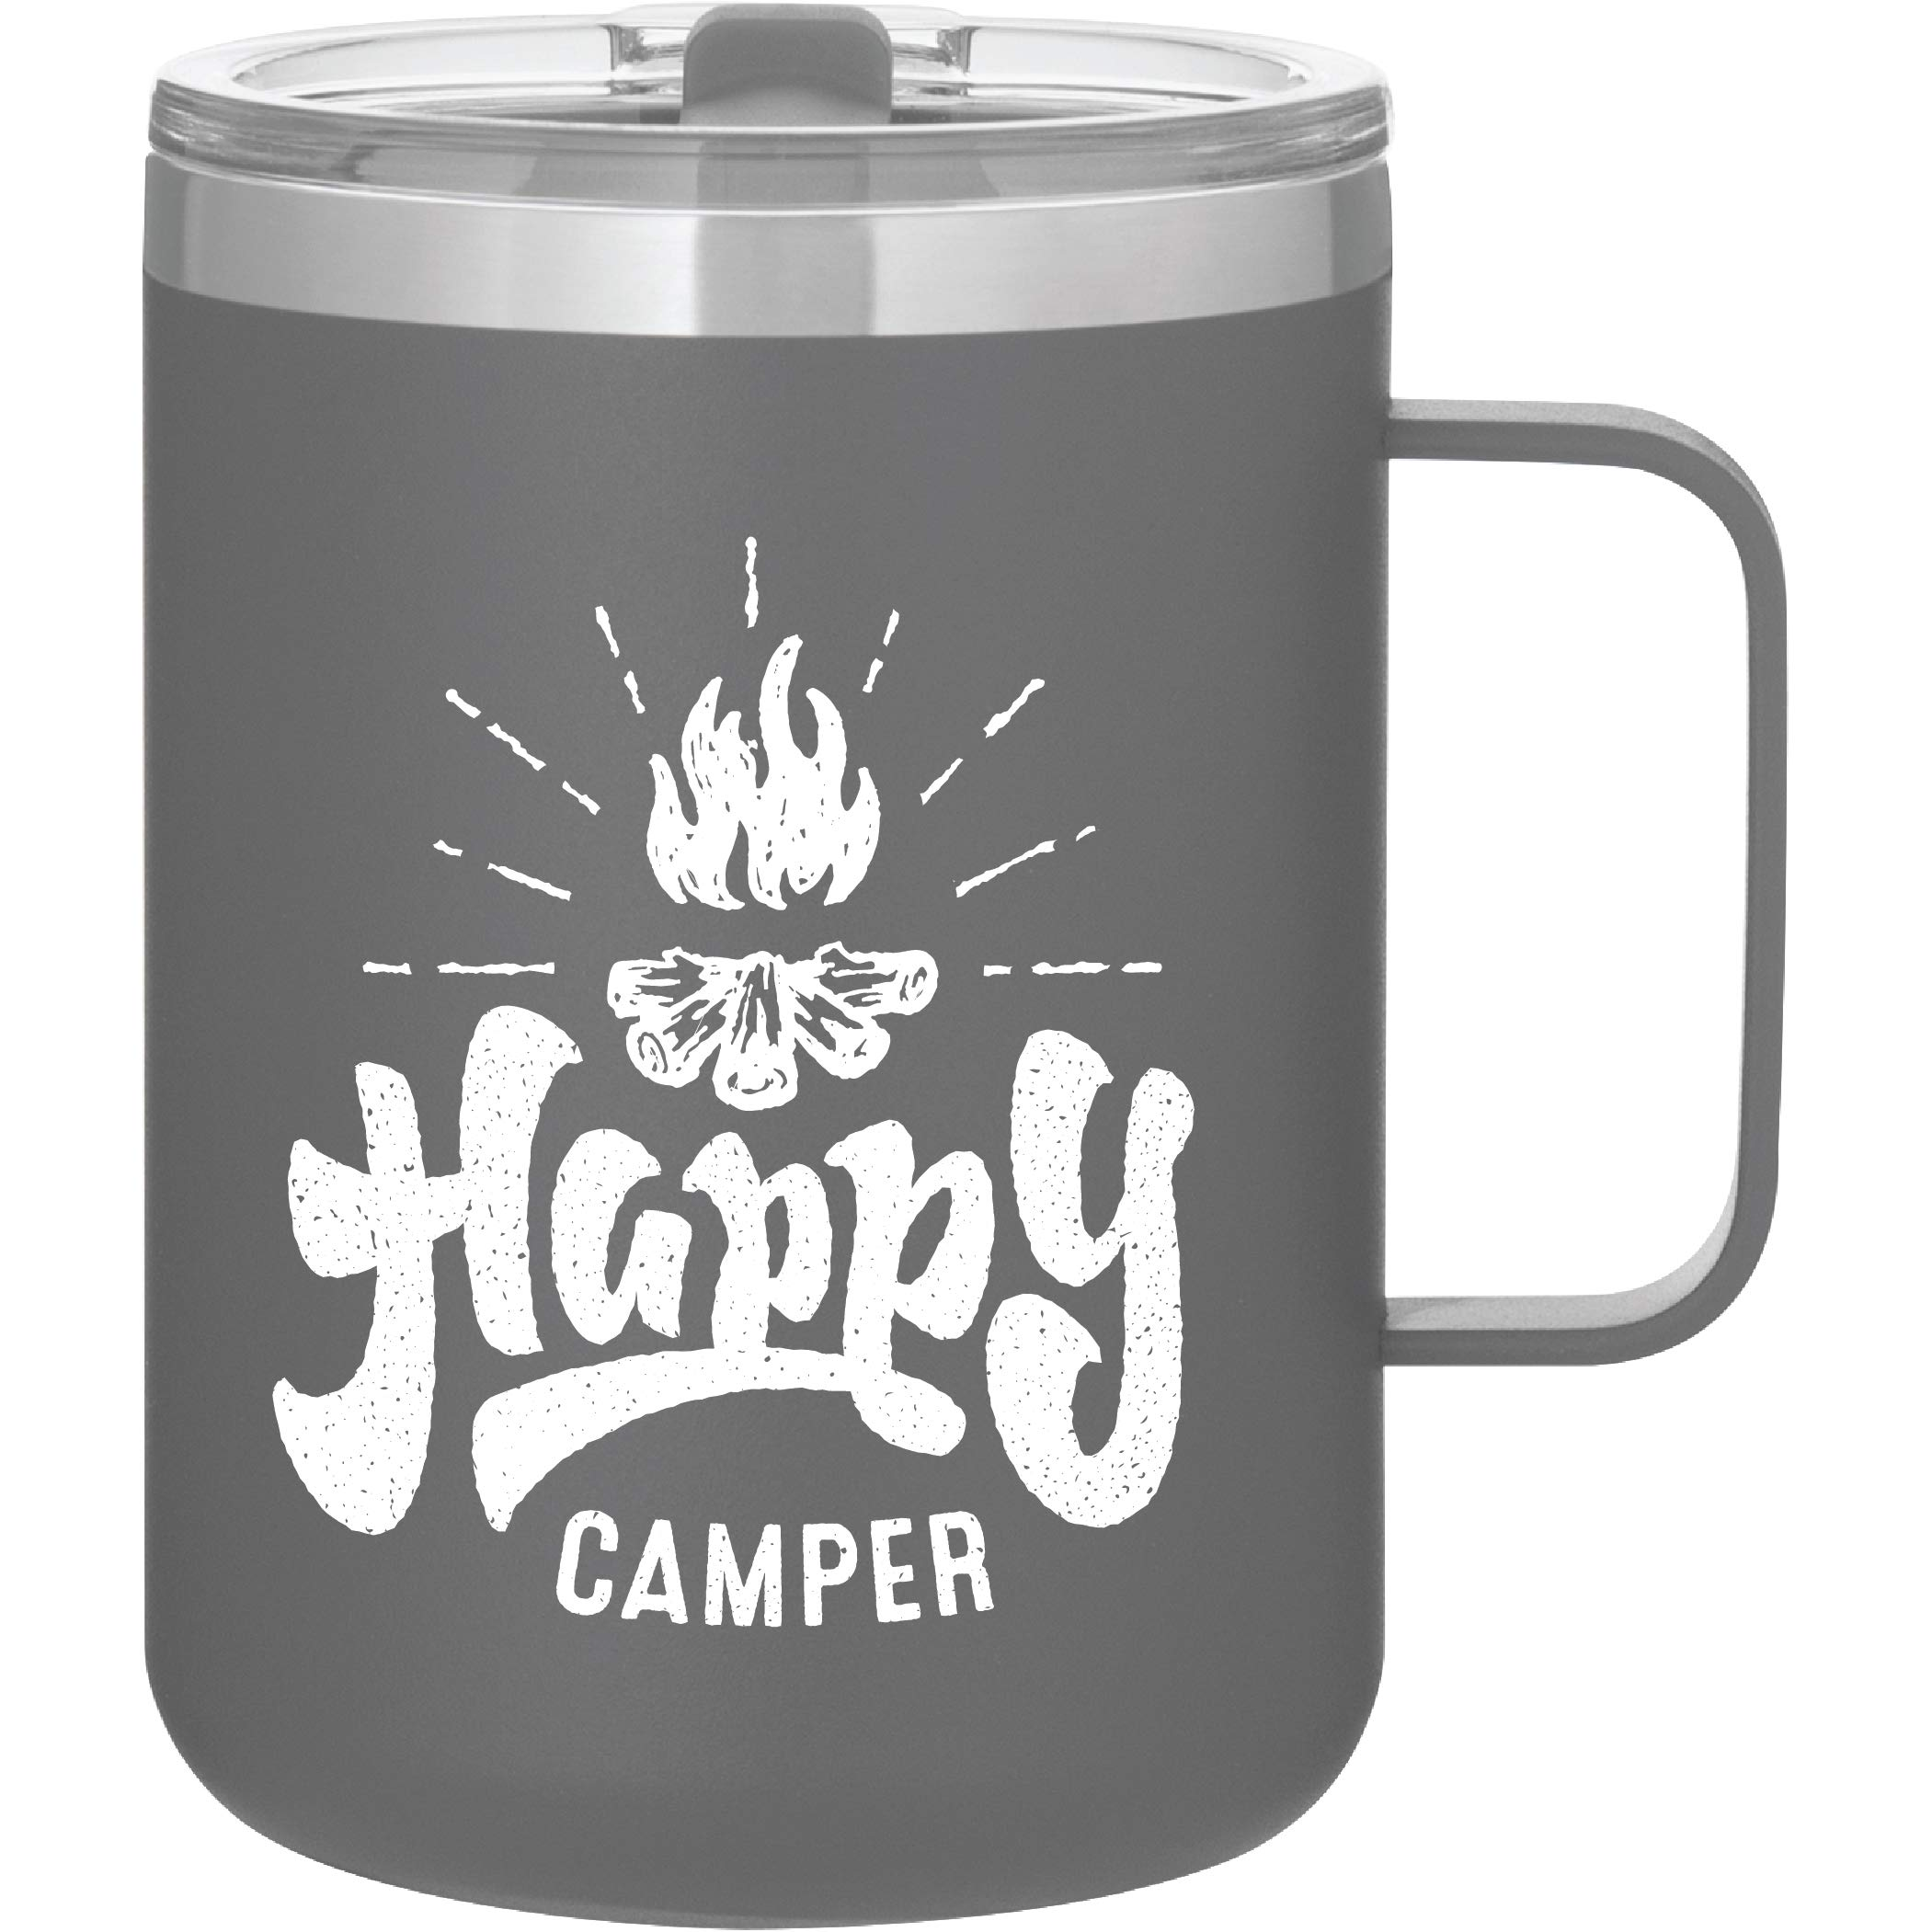 Happy Camper - Camping Gifts - 16oz Vacuum Insulated Travel Mug with Lid by MugHeads (Matte Gray)